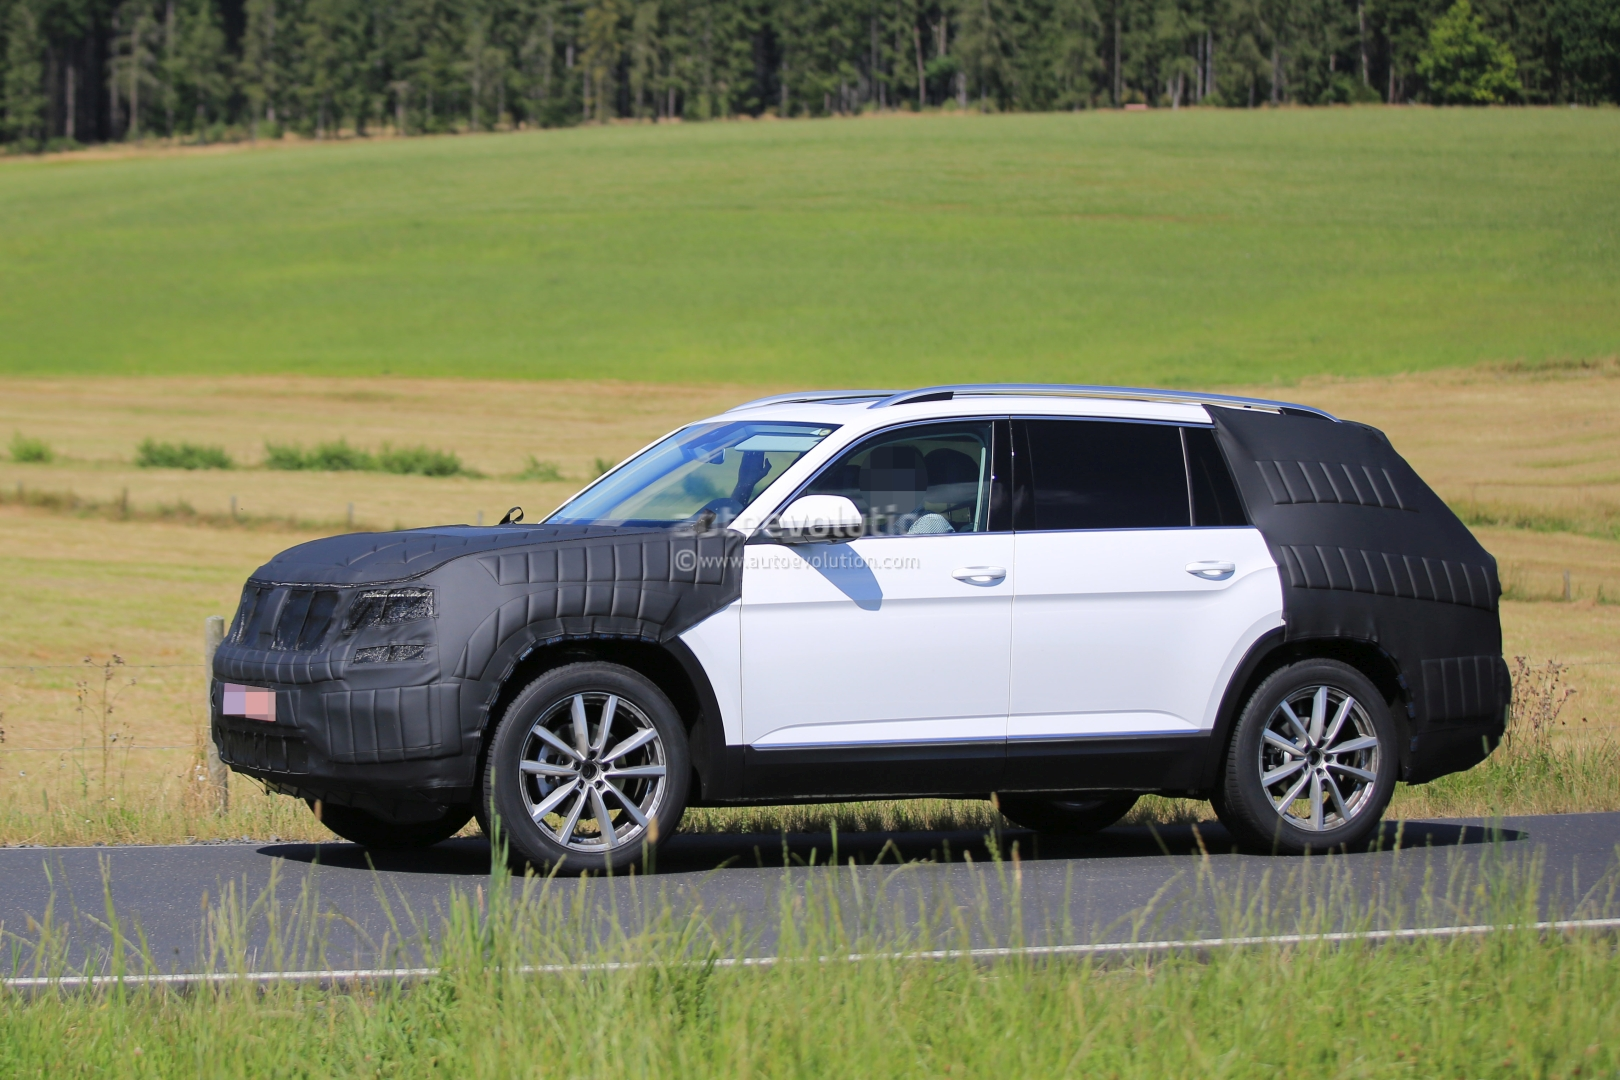 7 Seater Suv 2017 >> 2017 Volkswagen 7 Seater Us Market Suv Spied Testing Its Extended